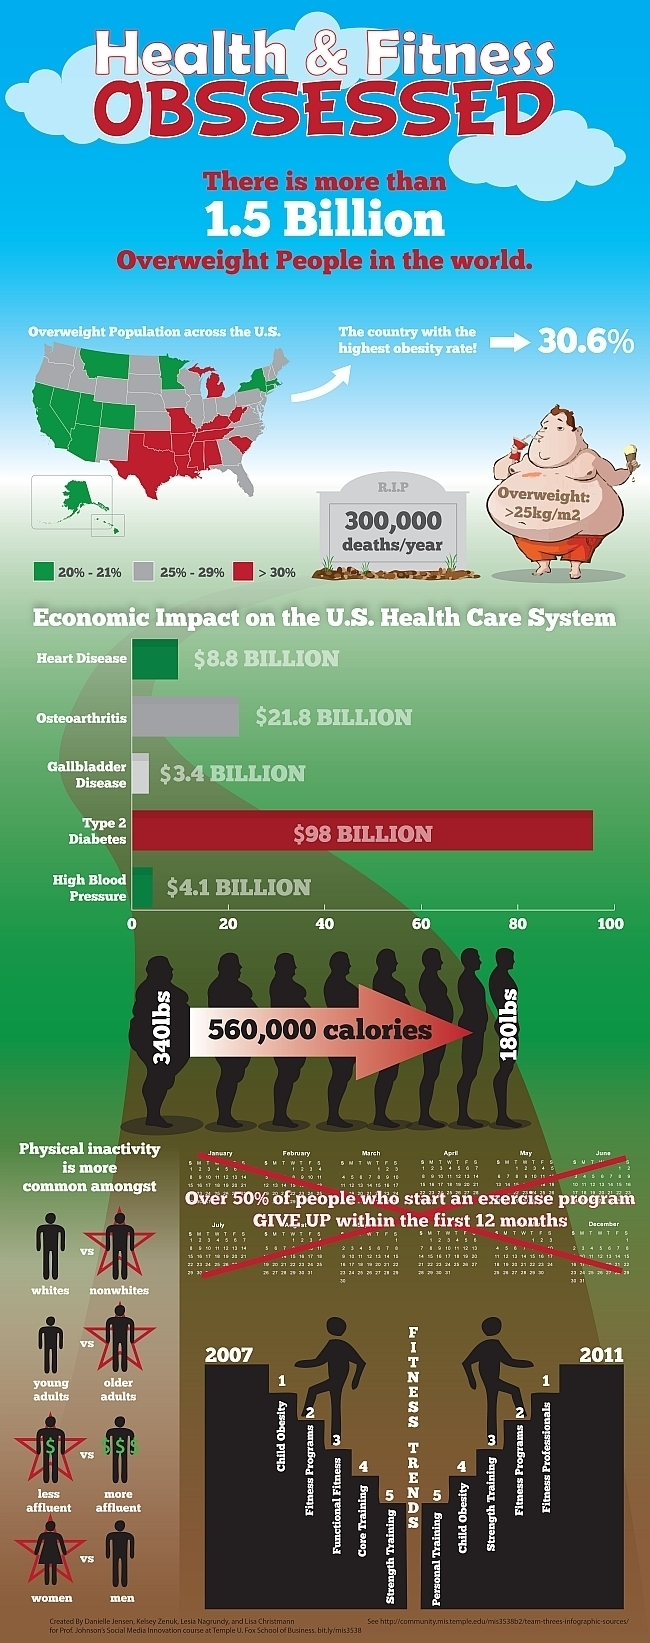 I ran across this infographic that really shows the impact of obesity rates across the United States. Obesity is a real issue, not just for individuals and families, but also for the health care system as a whole